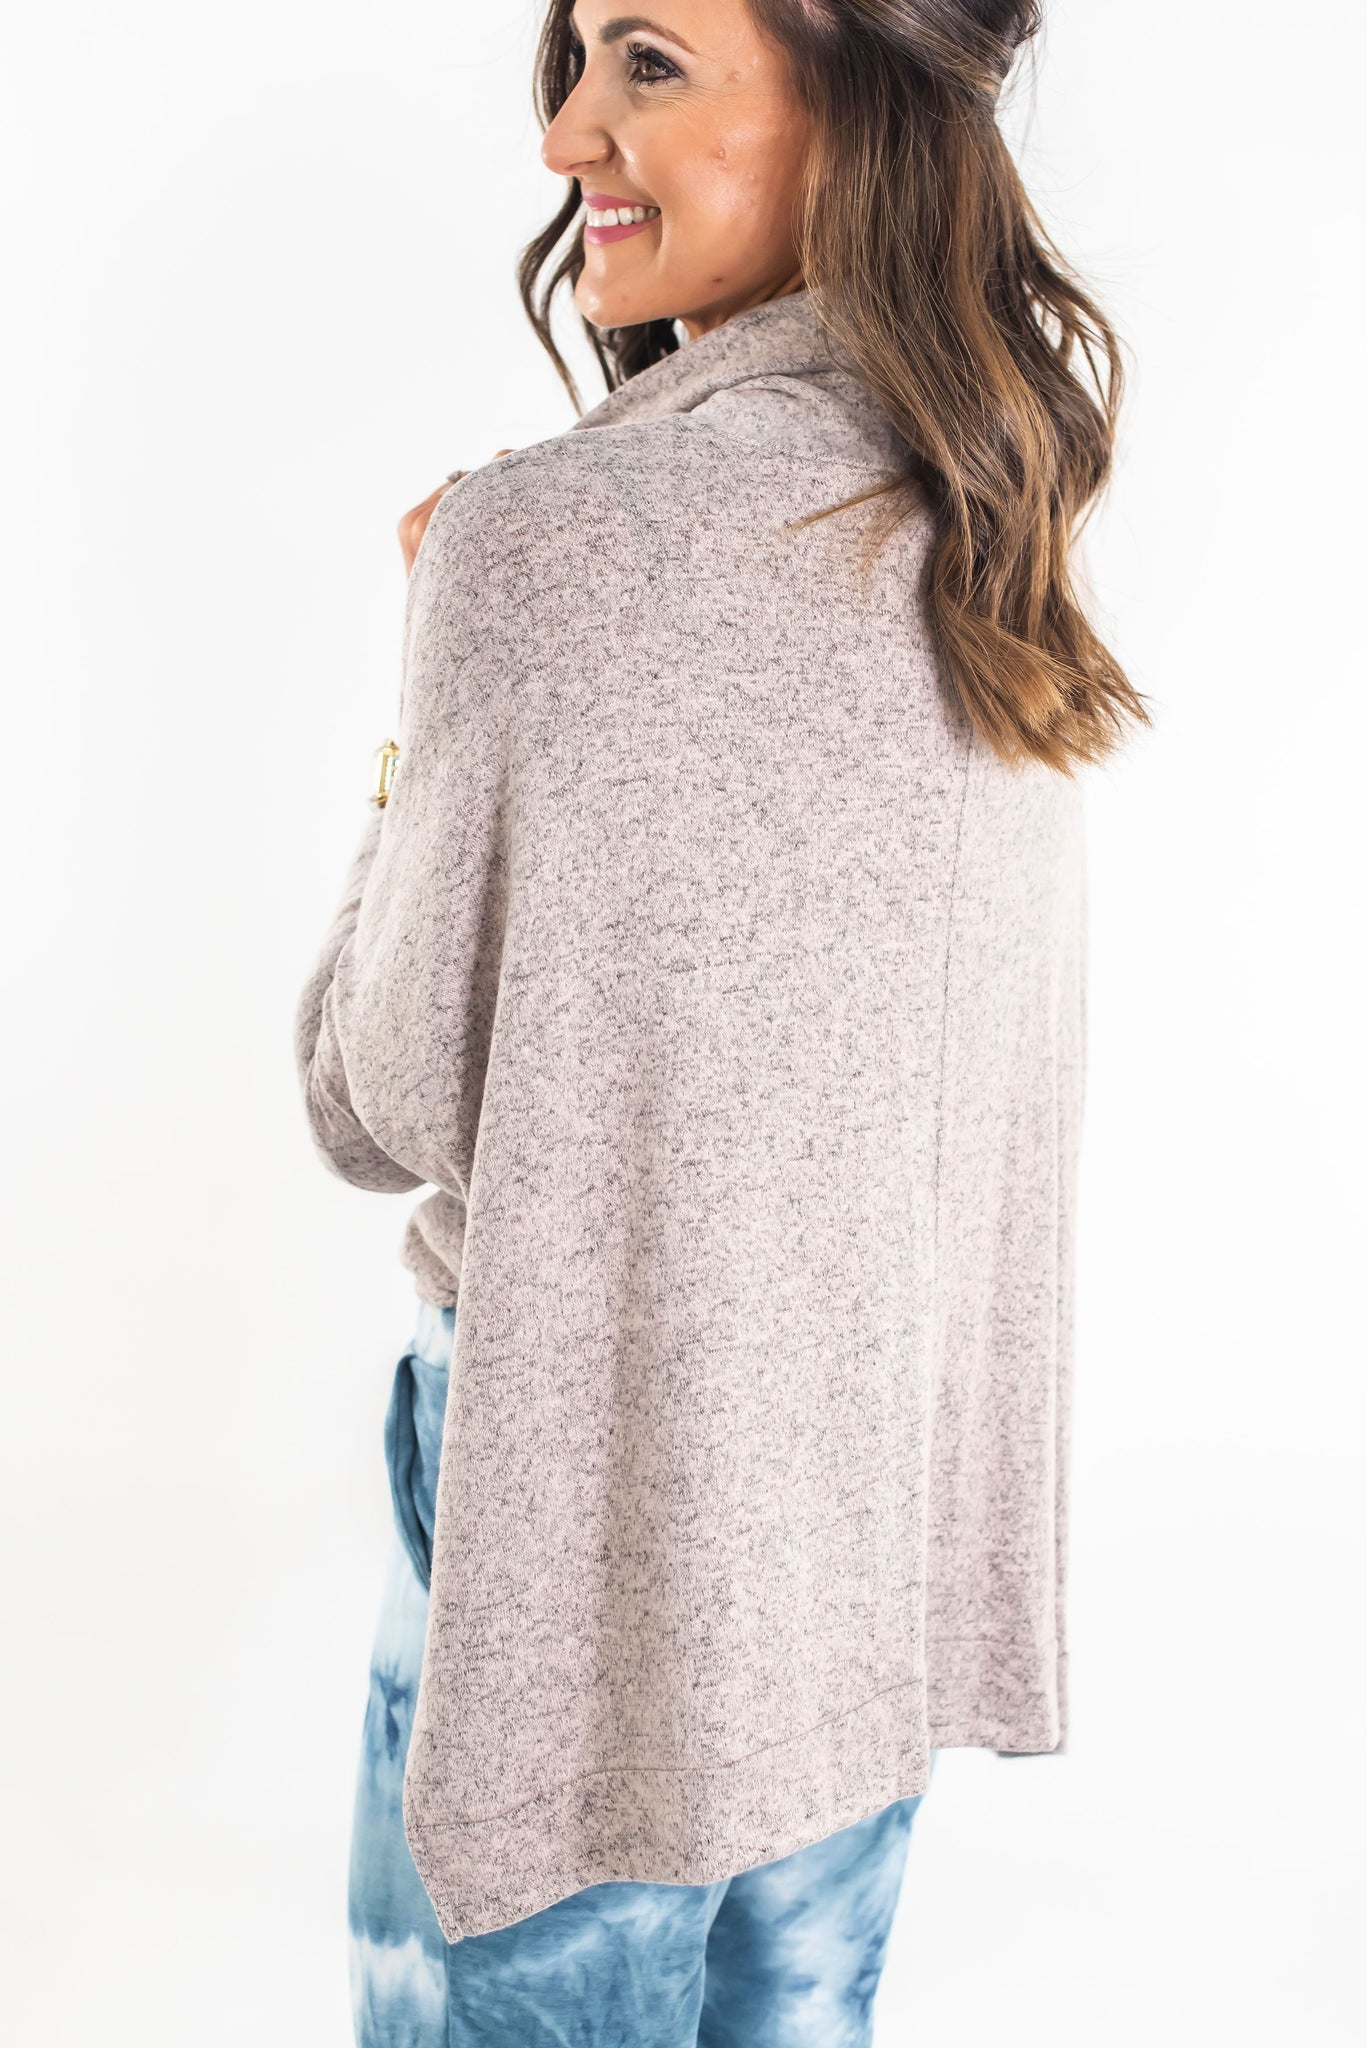 Taupe Brushed Turtle Neck Dolman Sleeve Top